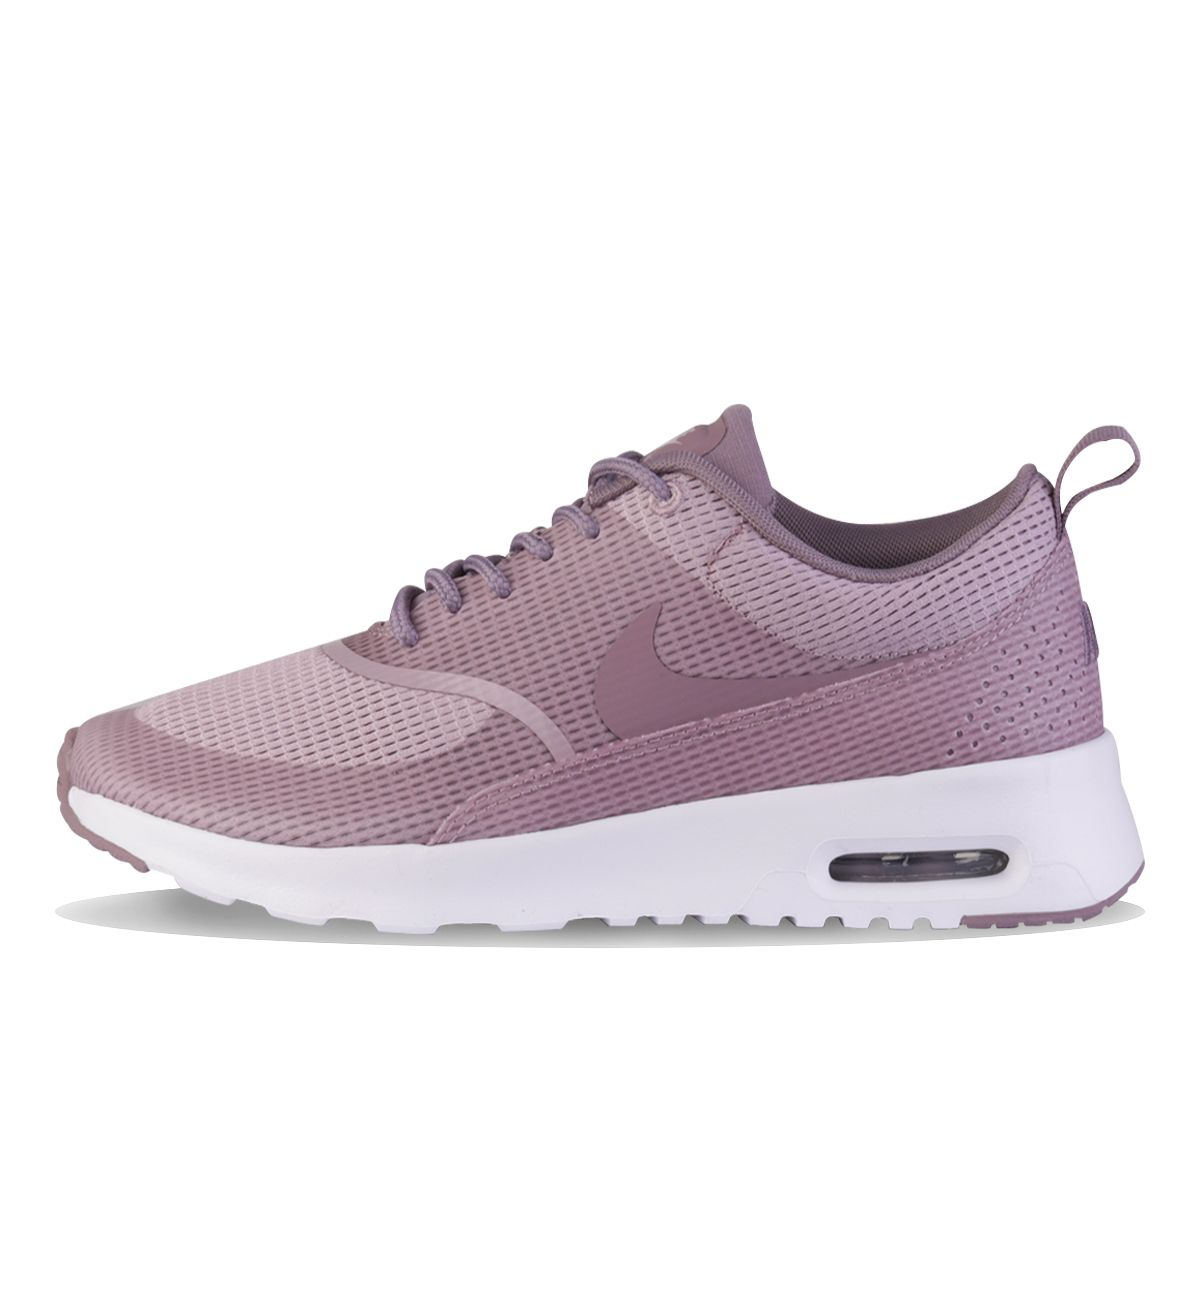 Nike WMNS Air Max Thea Textile Plum Fog / Purple Smoke - Nike Womens